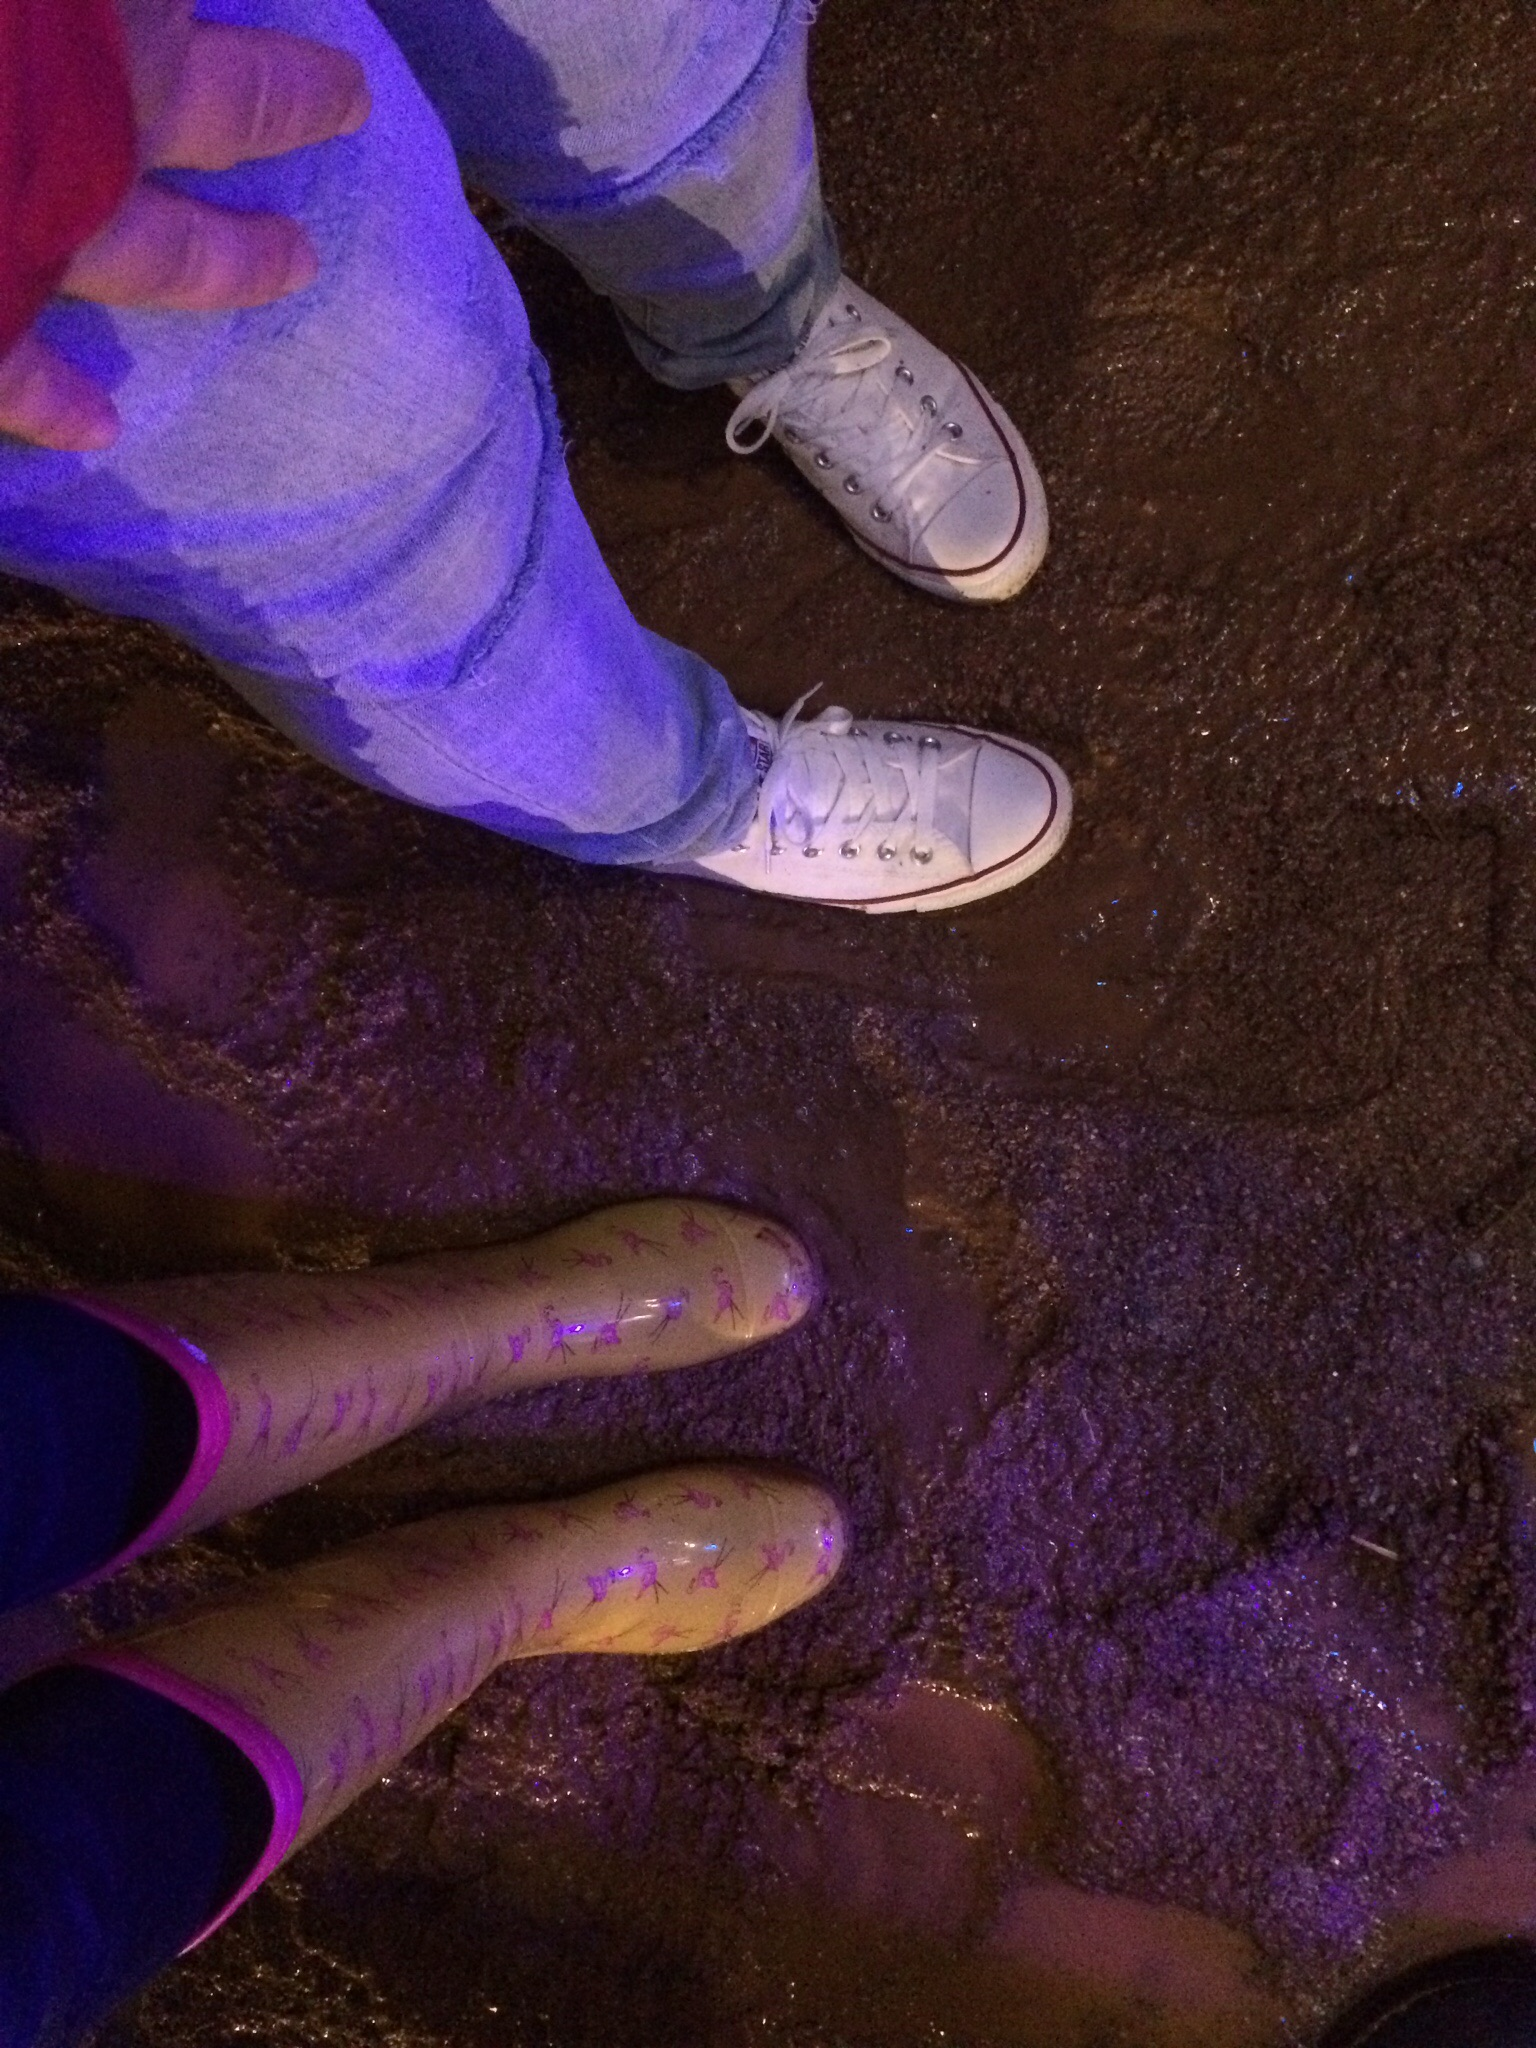 The mud we were standing in--at least I'm in rain boots!